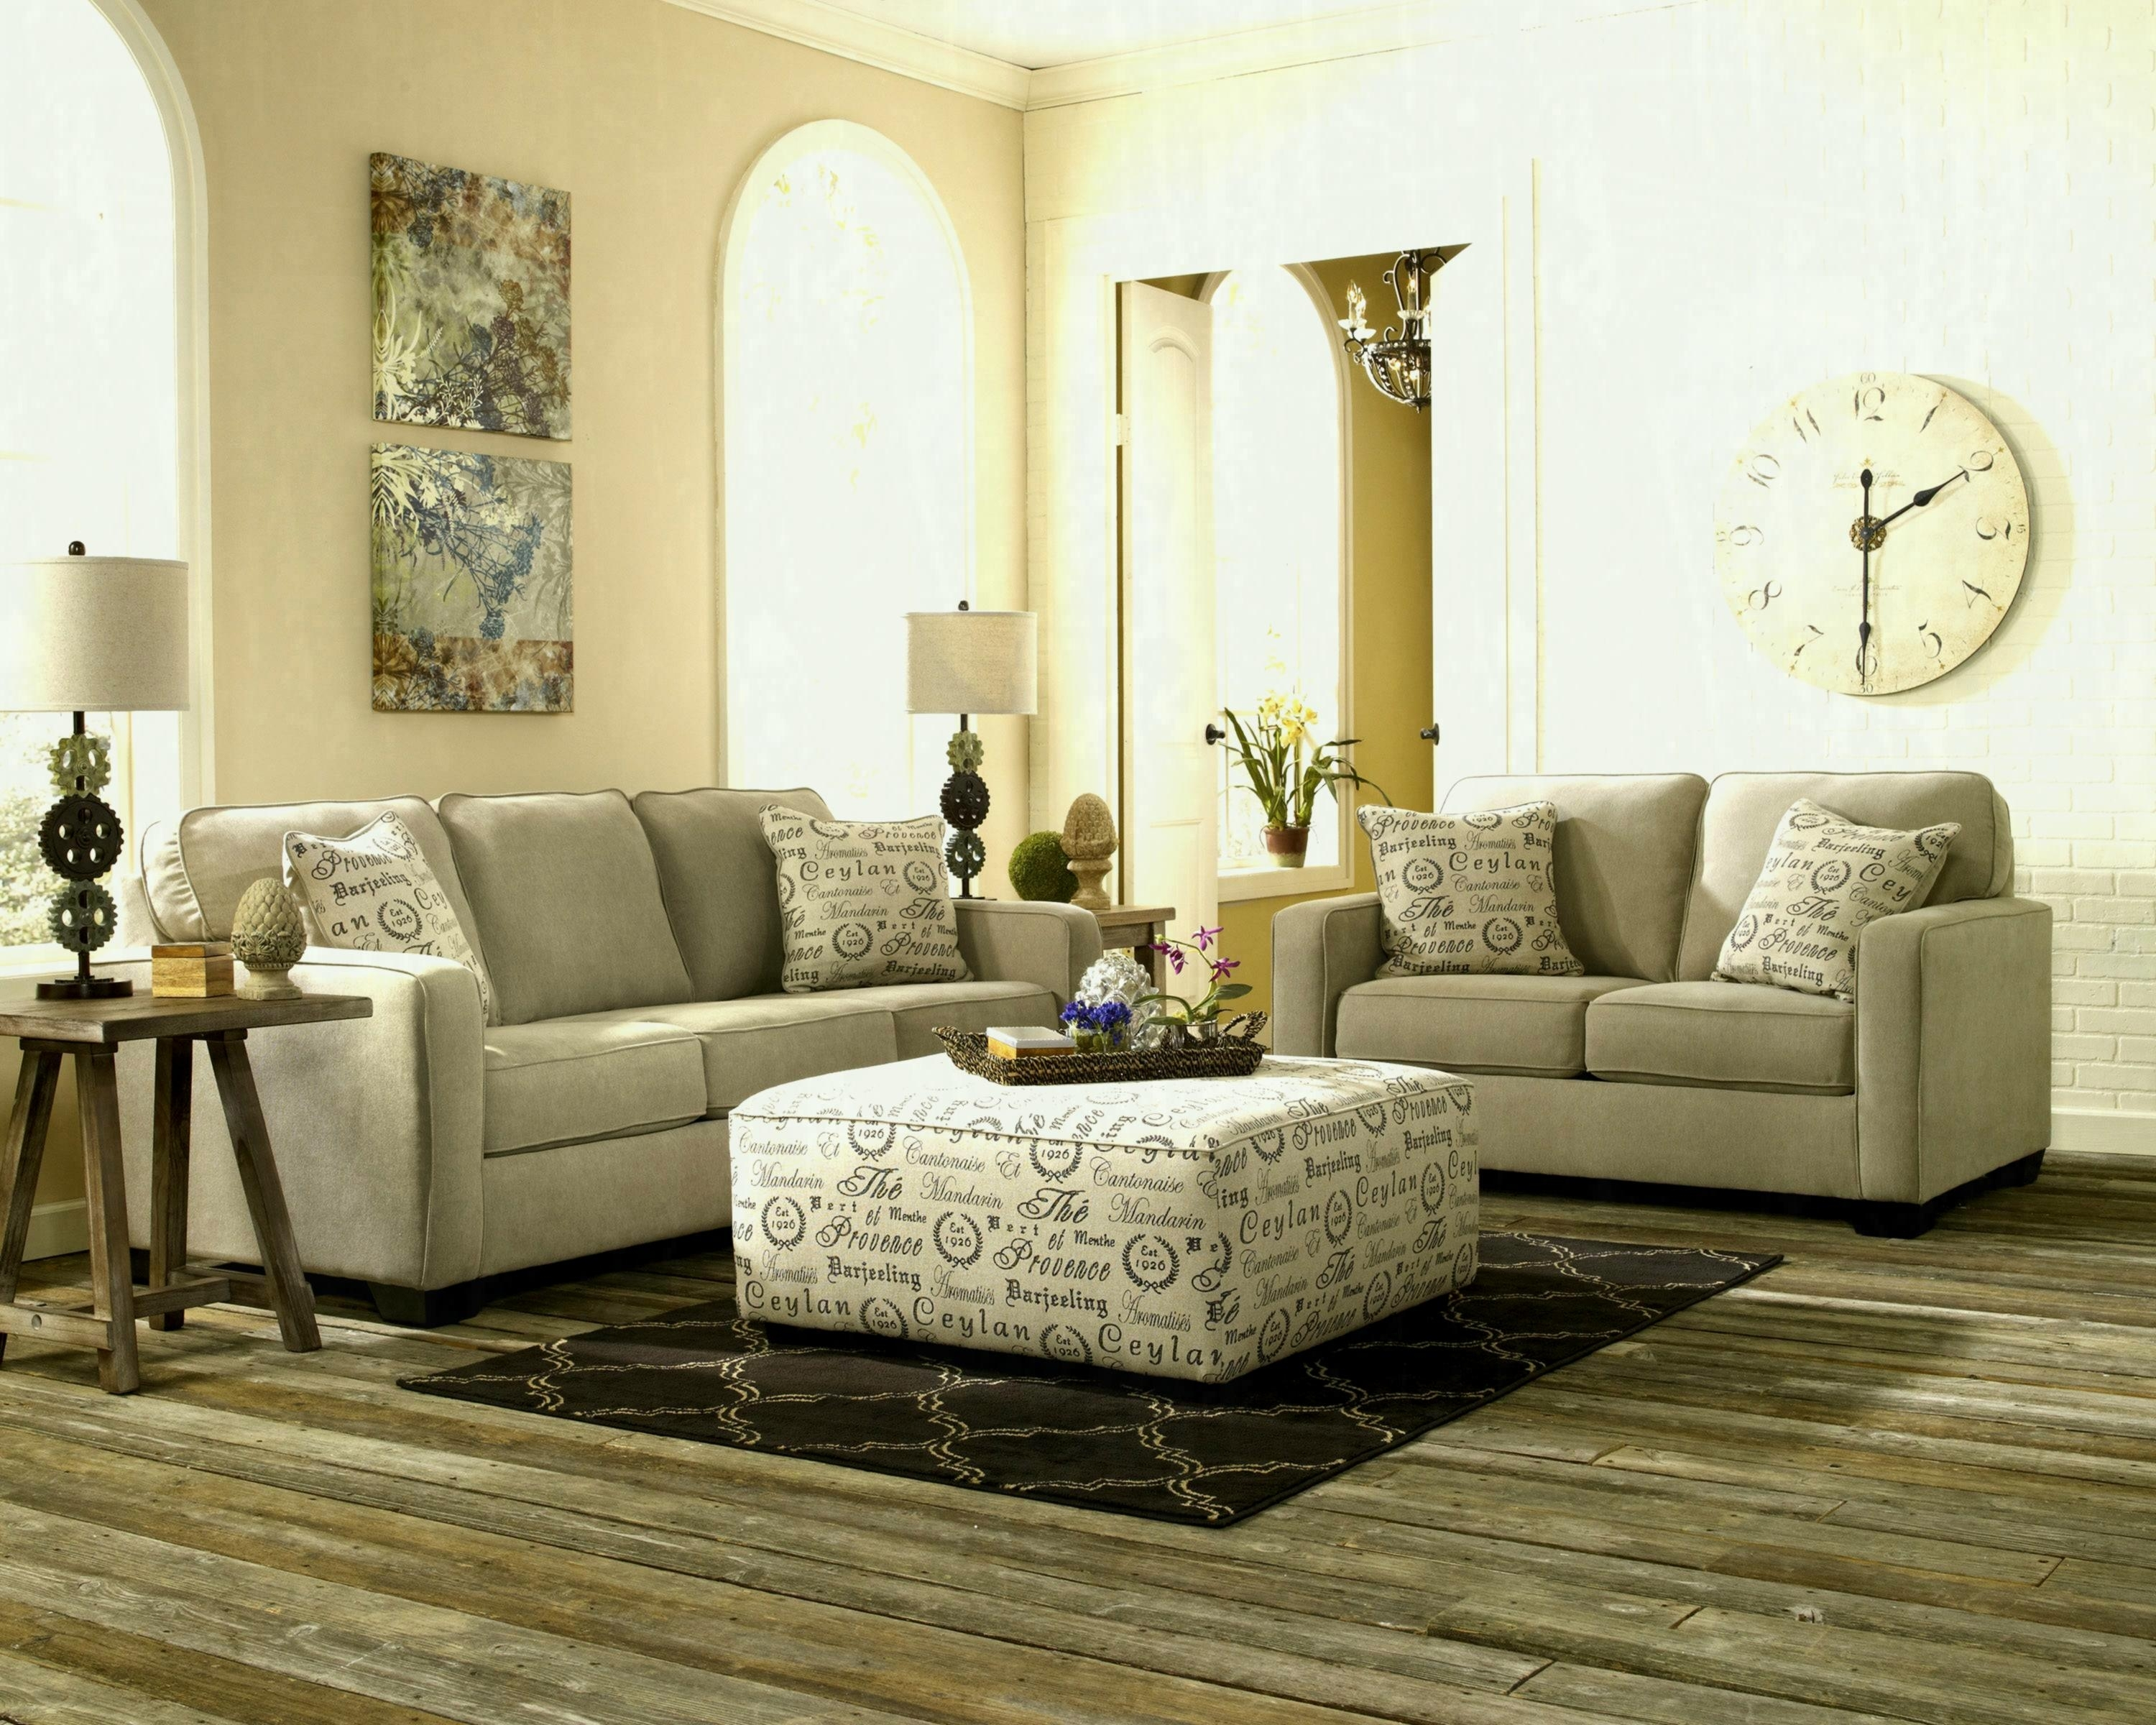 Added To Cart Aquarius Light Grey Piece Sectional W Raf Chaise Regarding Aquarius Light Grey 2 Piece Sectionals With Laf Chaise (Image 3 of 25)